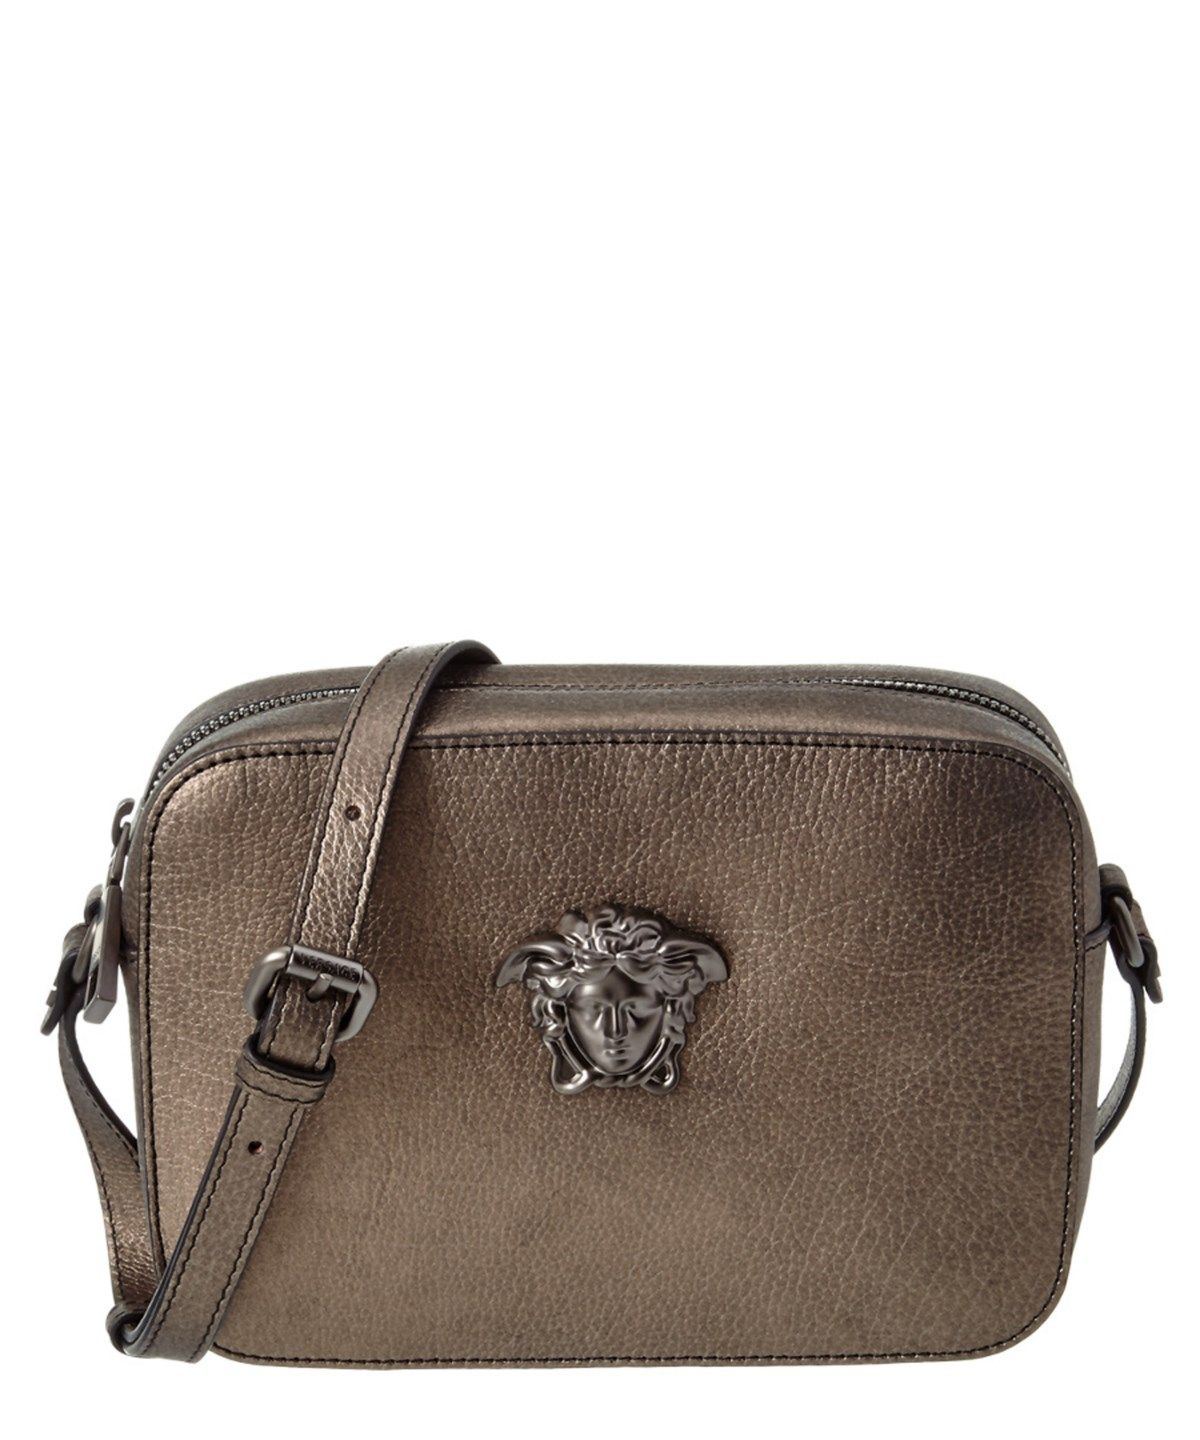 f33a905be710 VERSACE Versace Palazzo Medusa Small Leather Shoulder Bag .  versace  bags  shoulder  bags  leather  lining